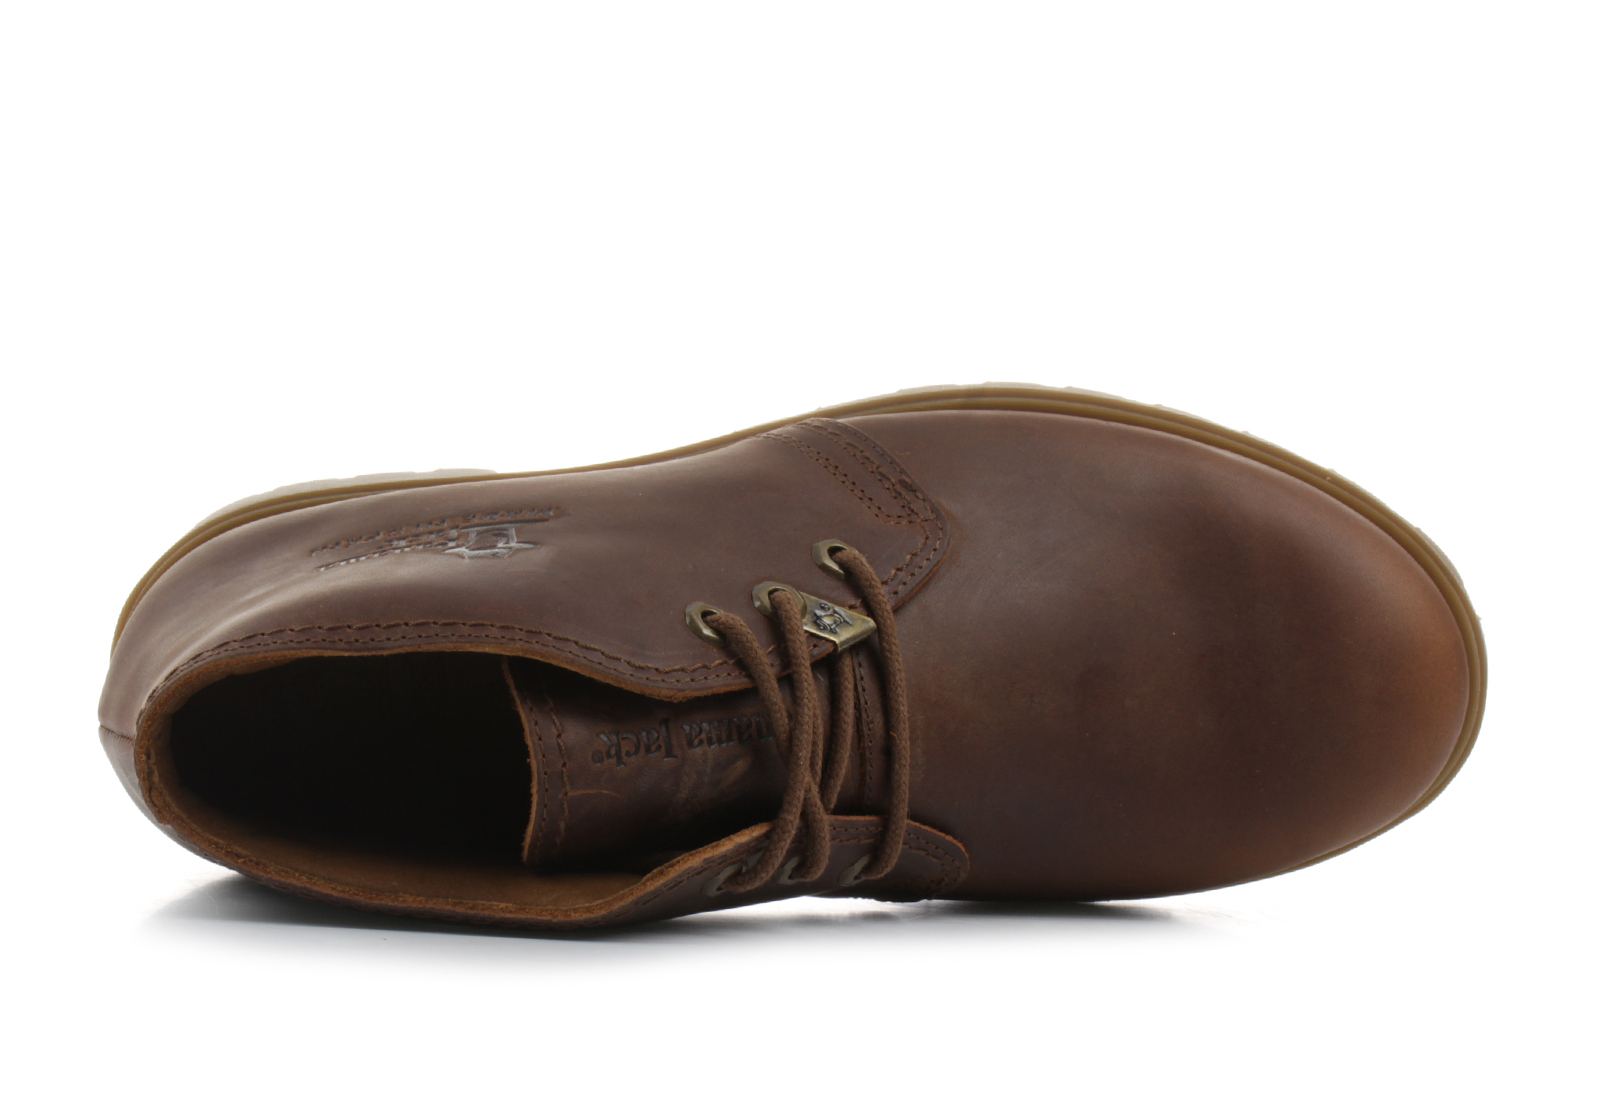 Panama Jack Shoes Prices